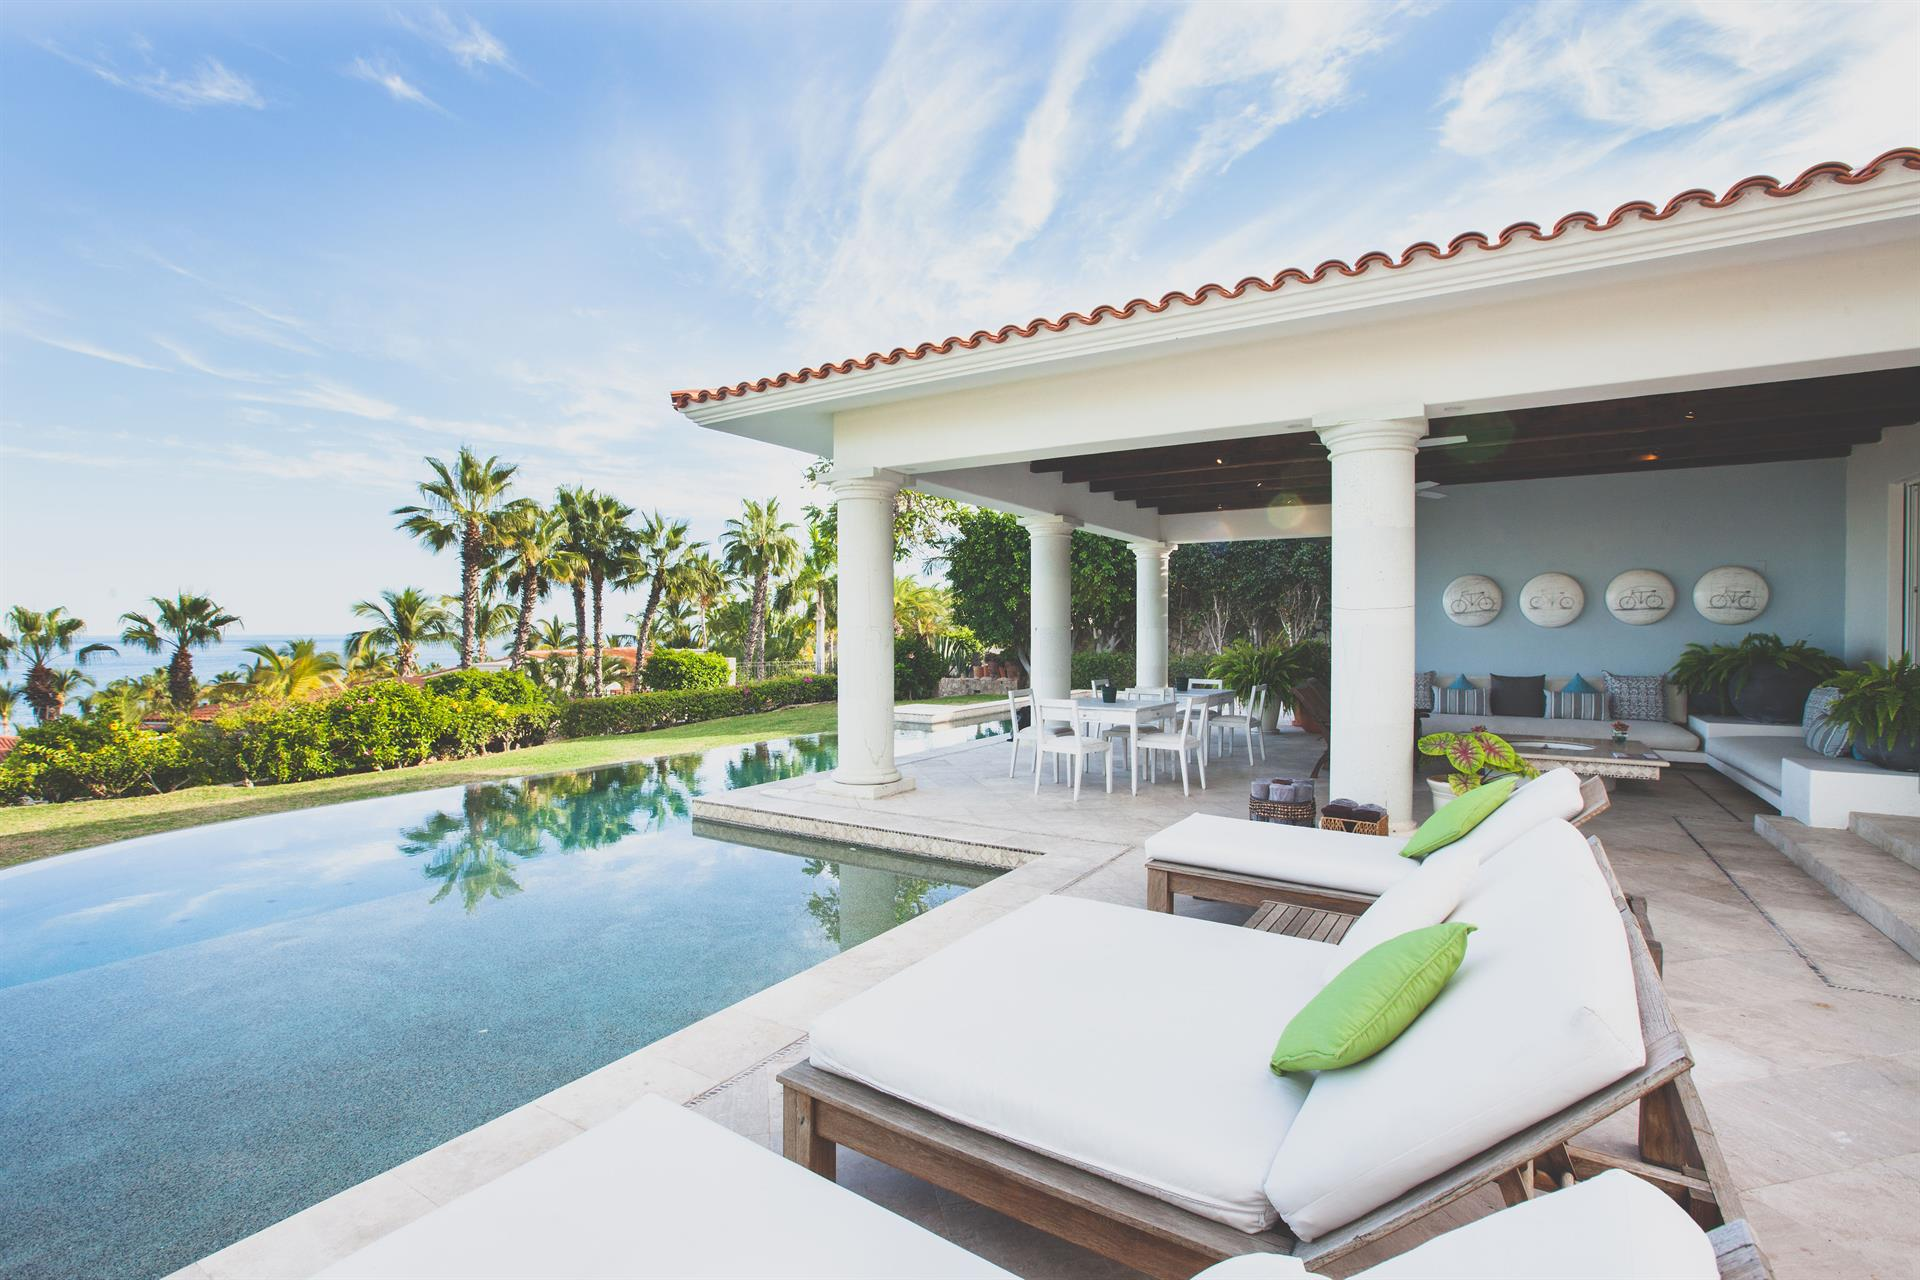 Casa Blanca A Luxury Home For Sale In San Jose Del Cabo Baja